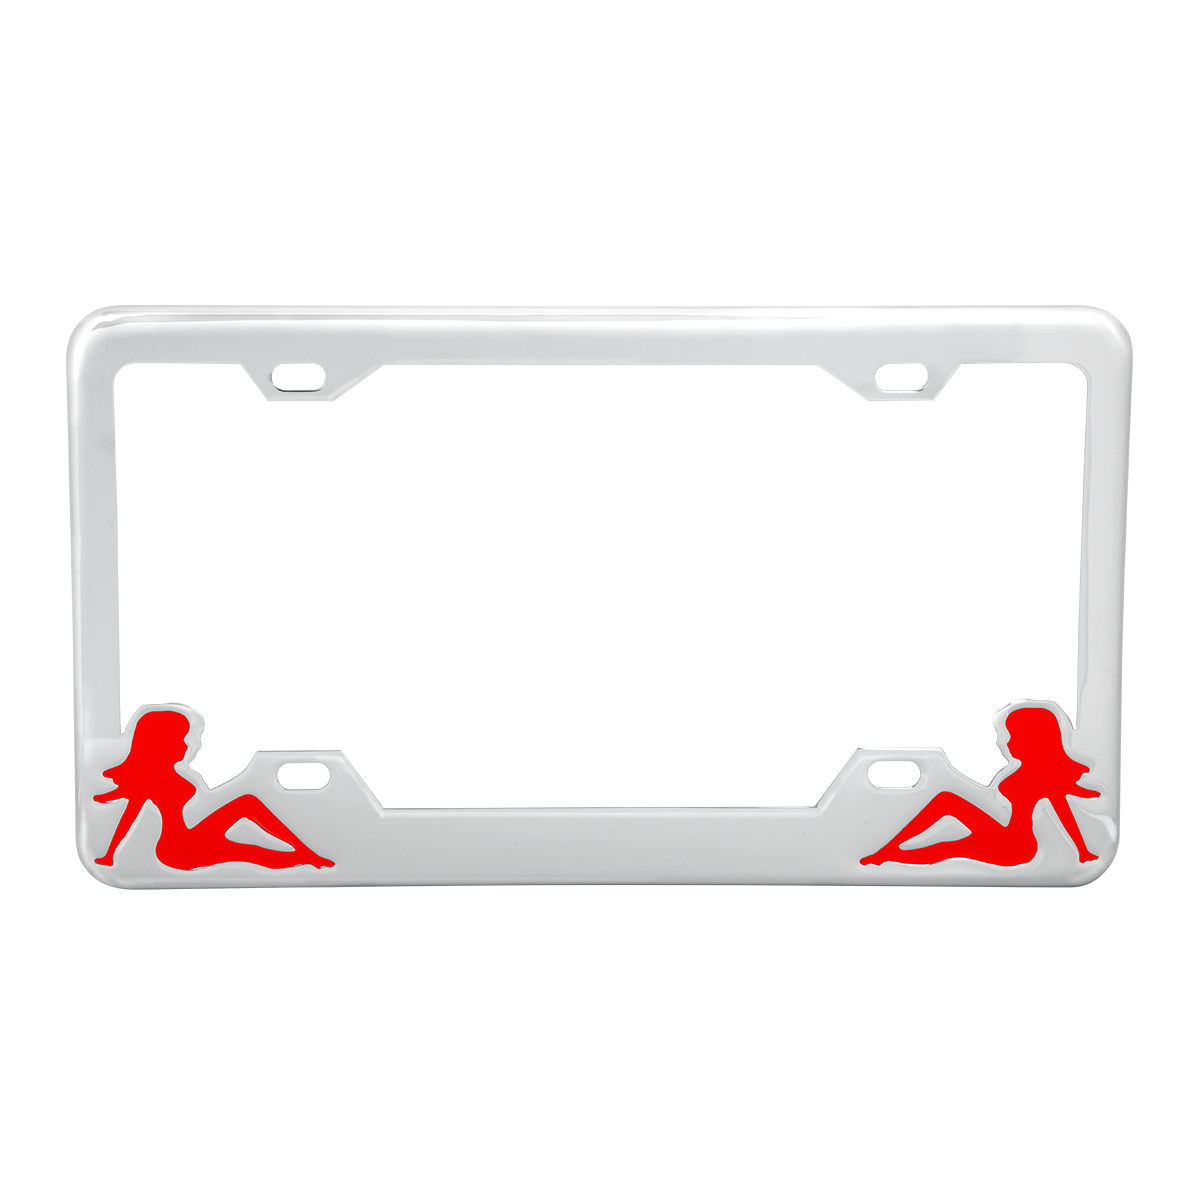 Chrome Plated Steel License Plate Frame with Red Color Sitting Ladies